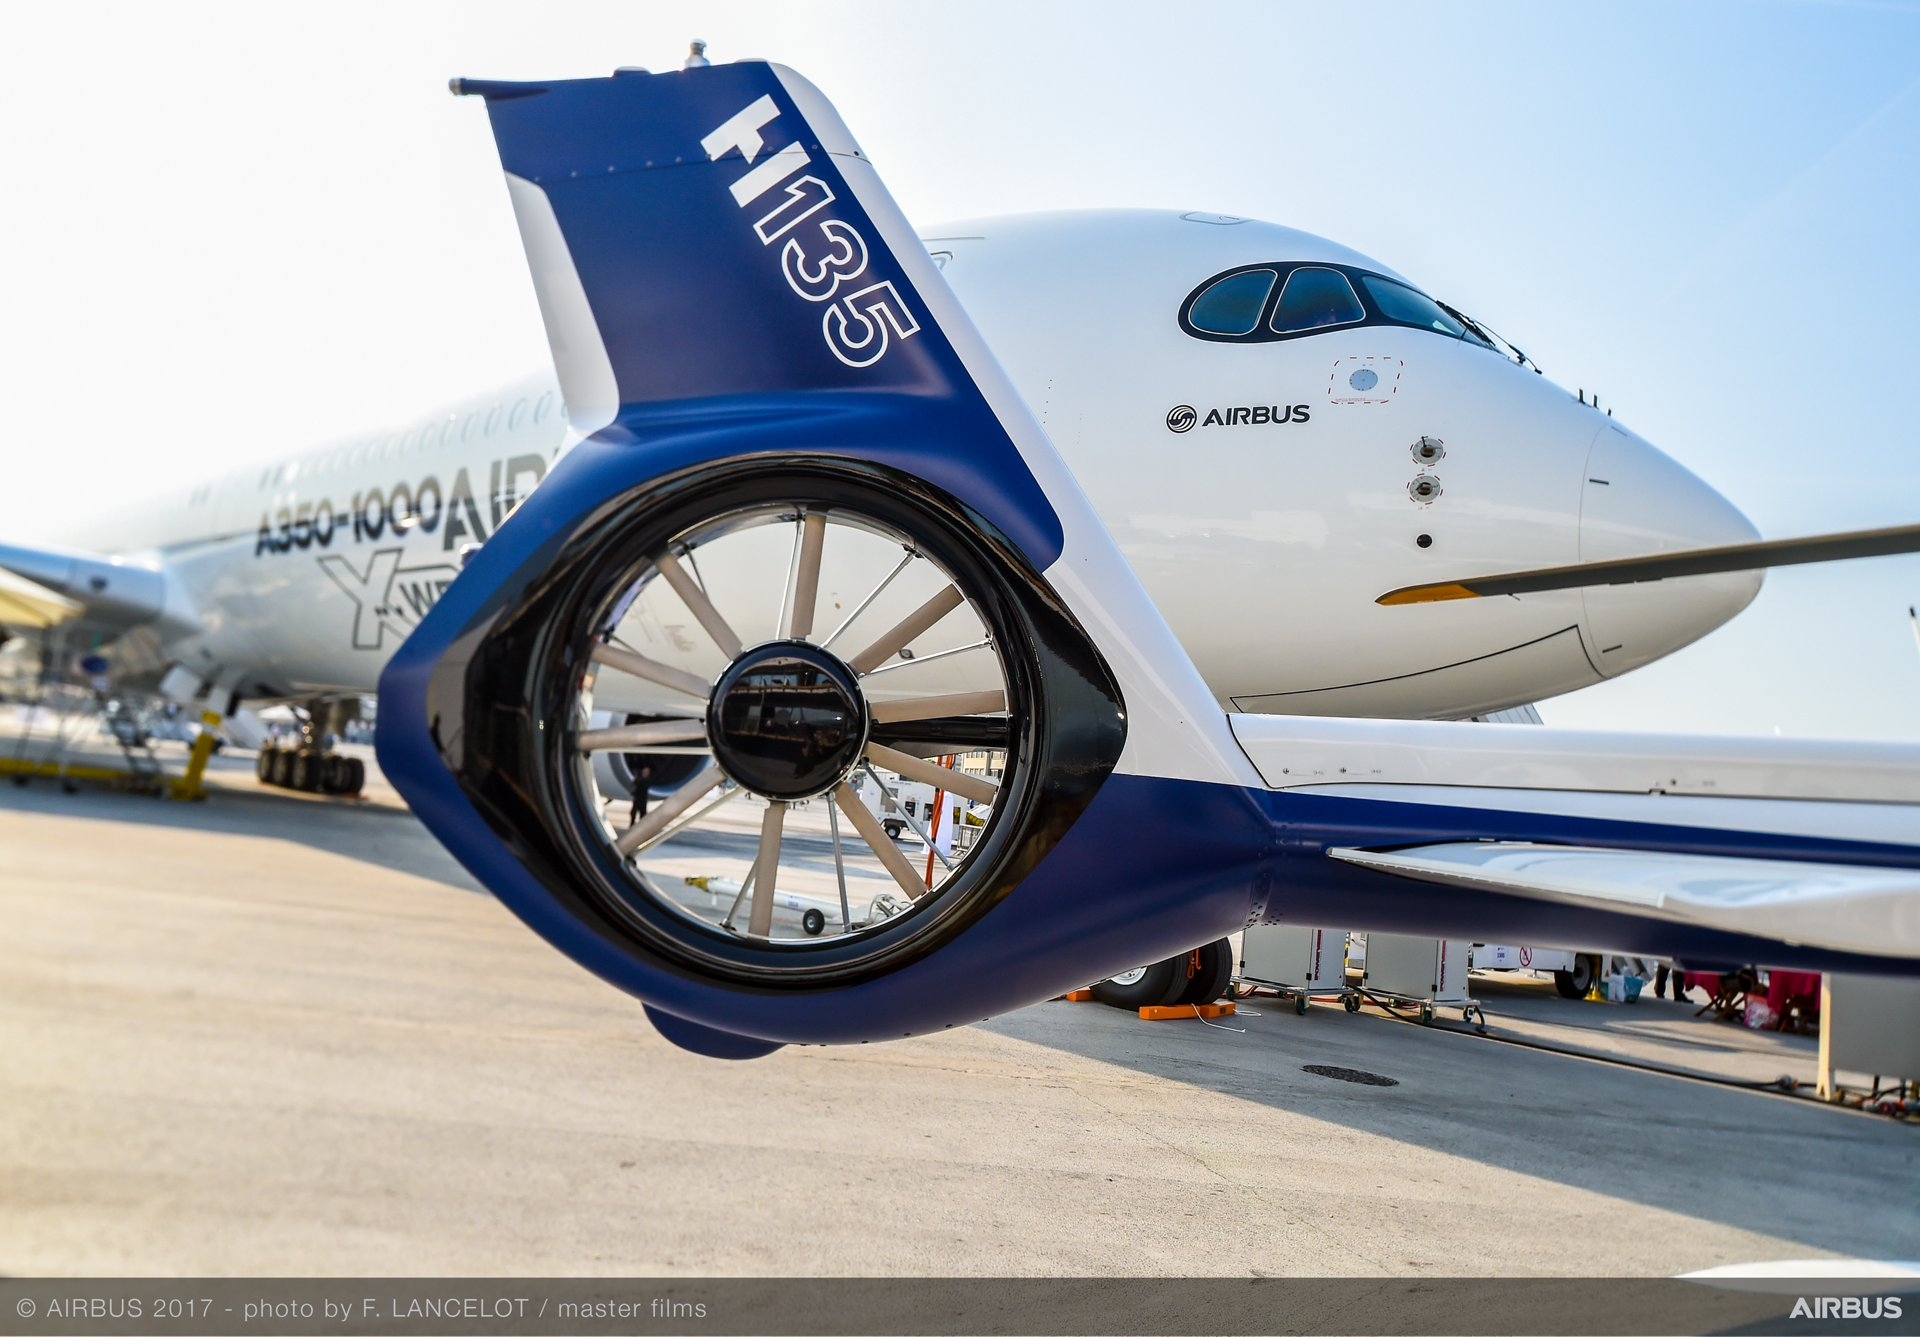 The A350-1000 (background) and H135: with its Fenestron shrouded tail rotor, the H135 is valued for its low acoustic footprint.